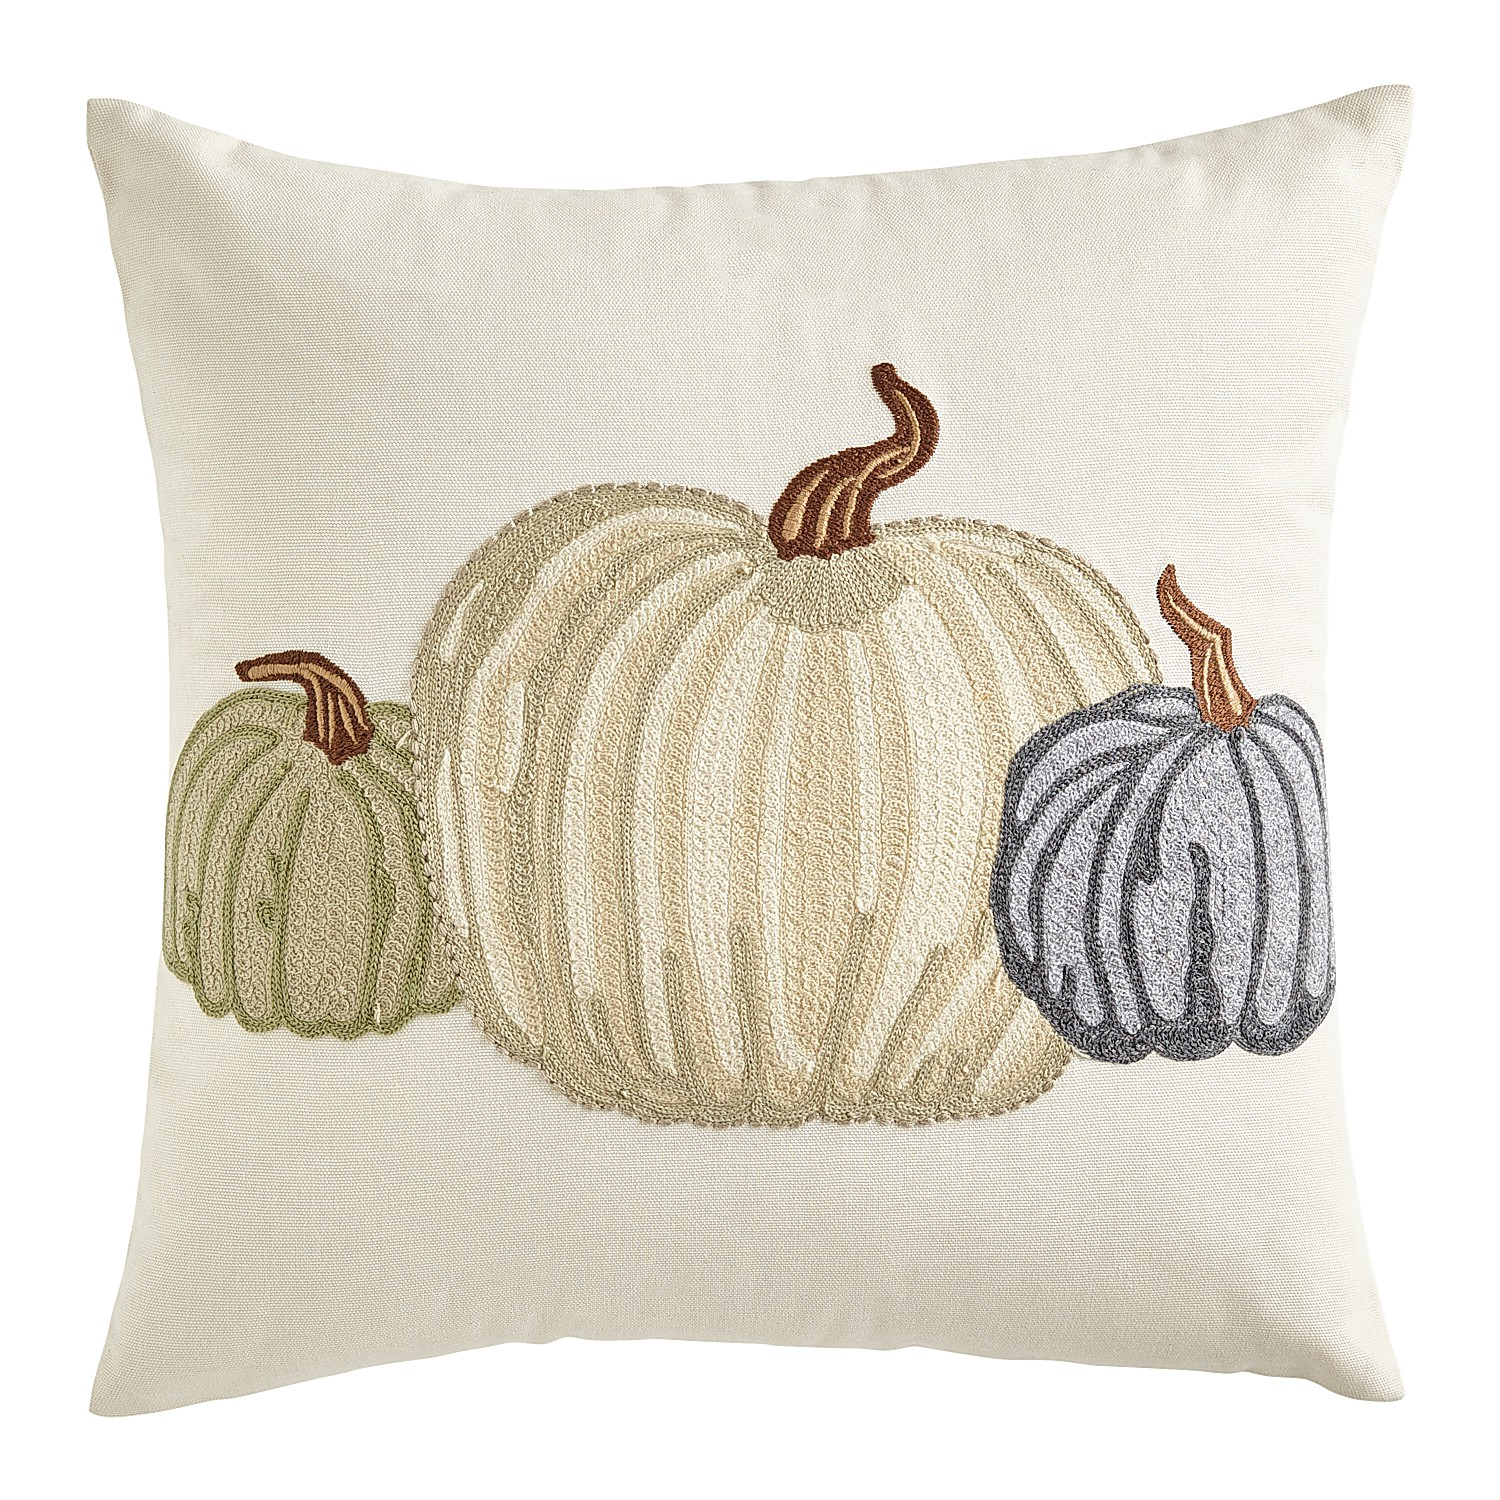 Embroidered White Pumpkin Pillow